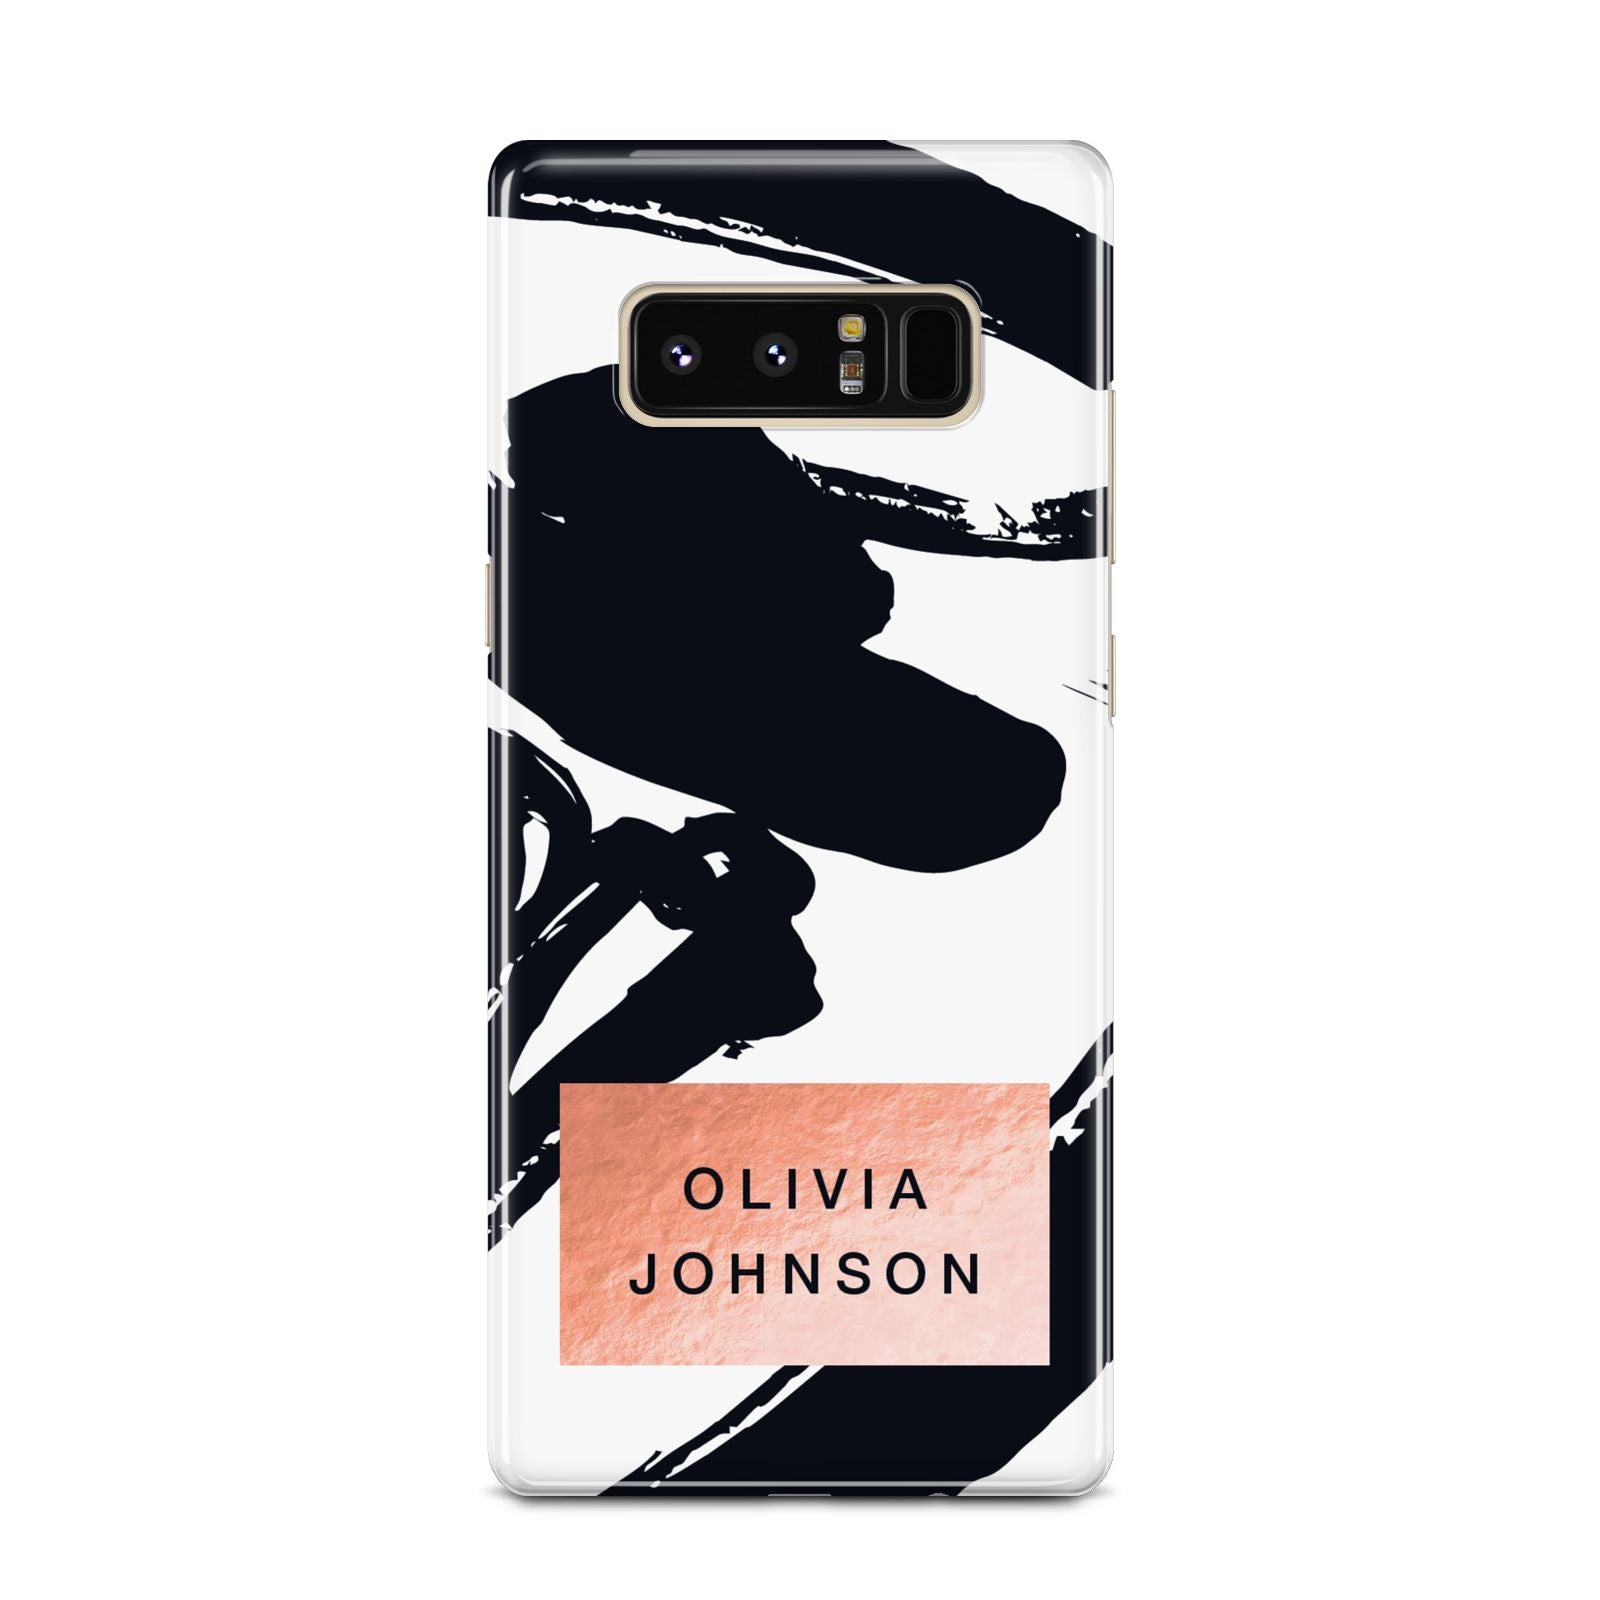 Personalised Black Brushes With Name Samsung Galaxy Note 8 Case